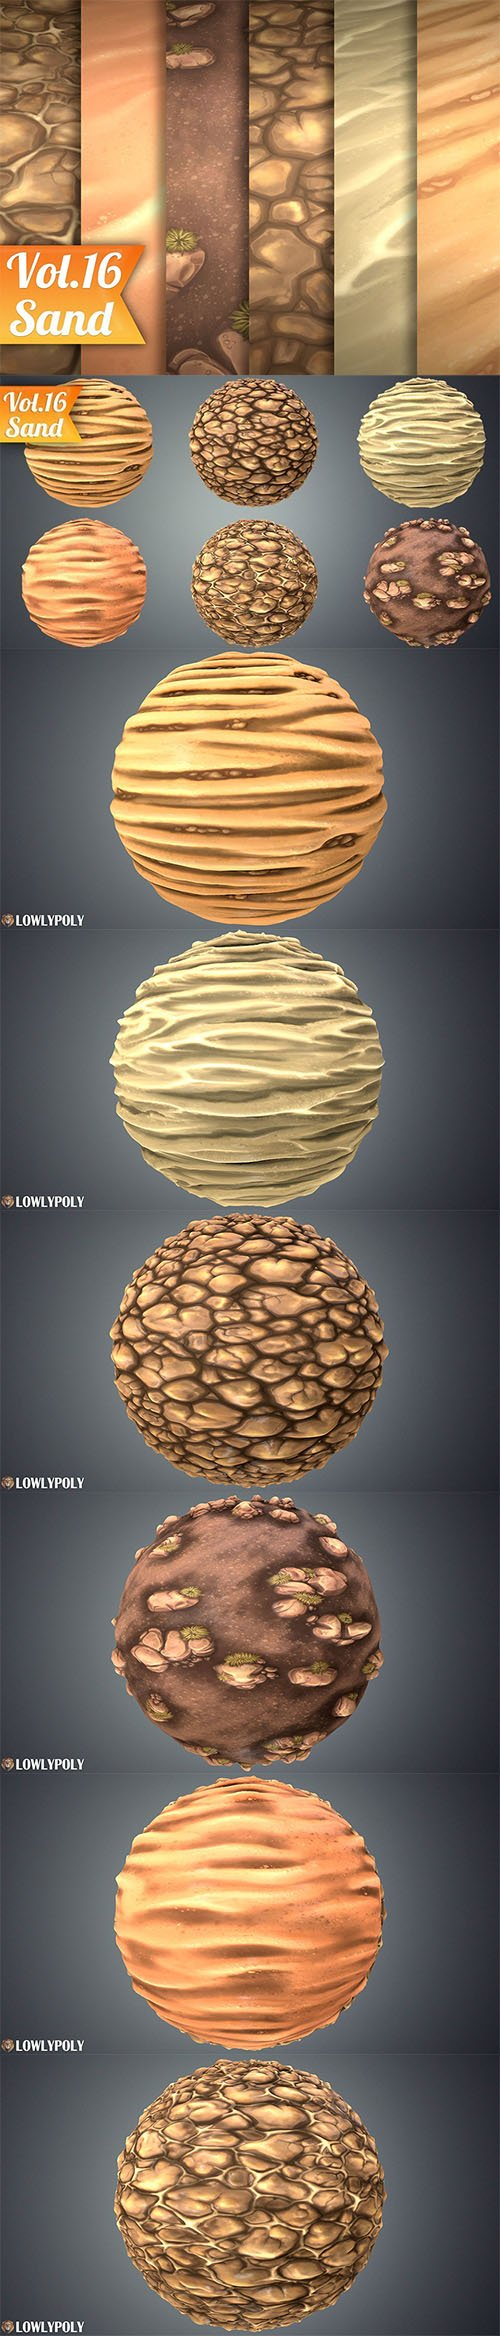 Stylized Sand Vol 16 - Hand Painted Texture Pack Texture